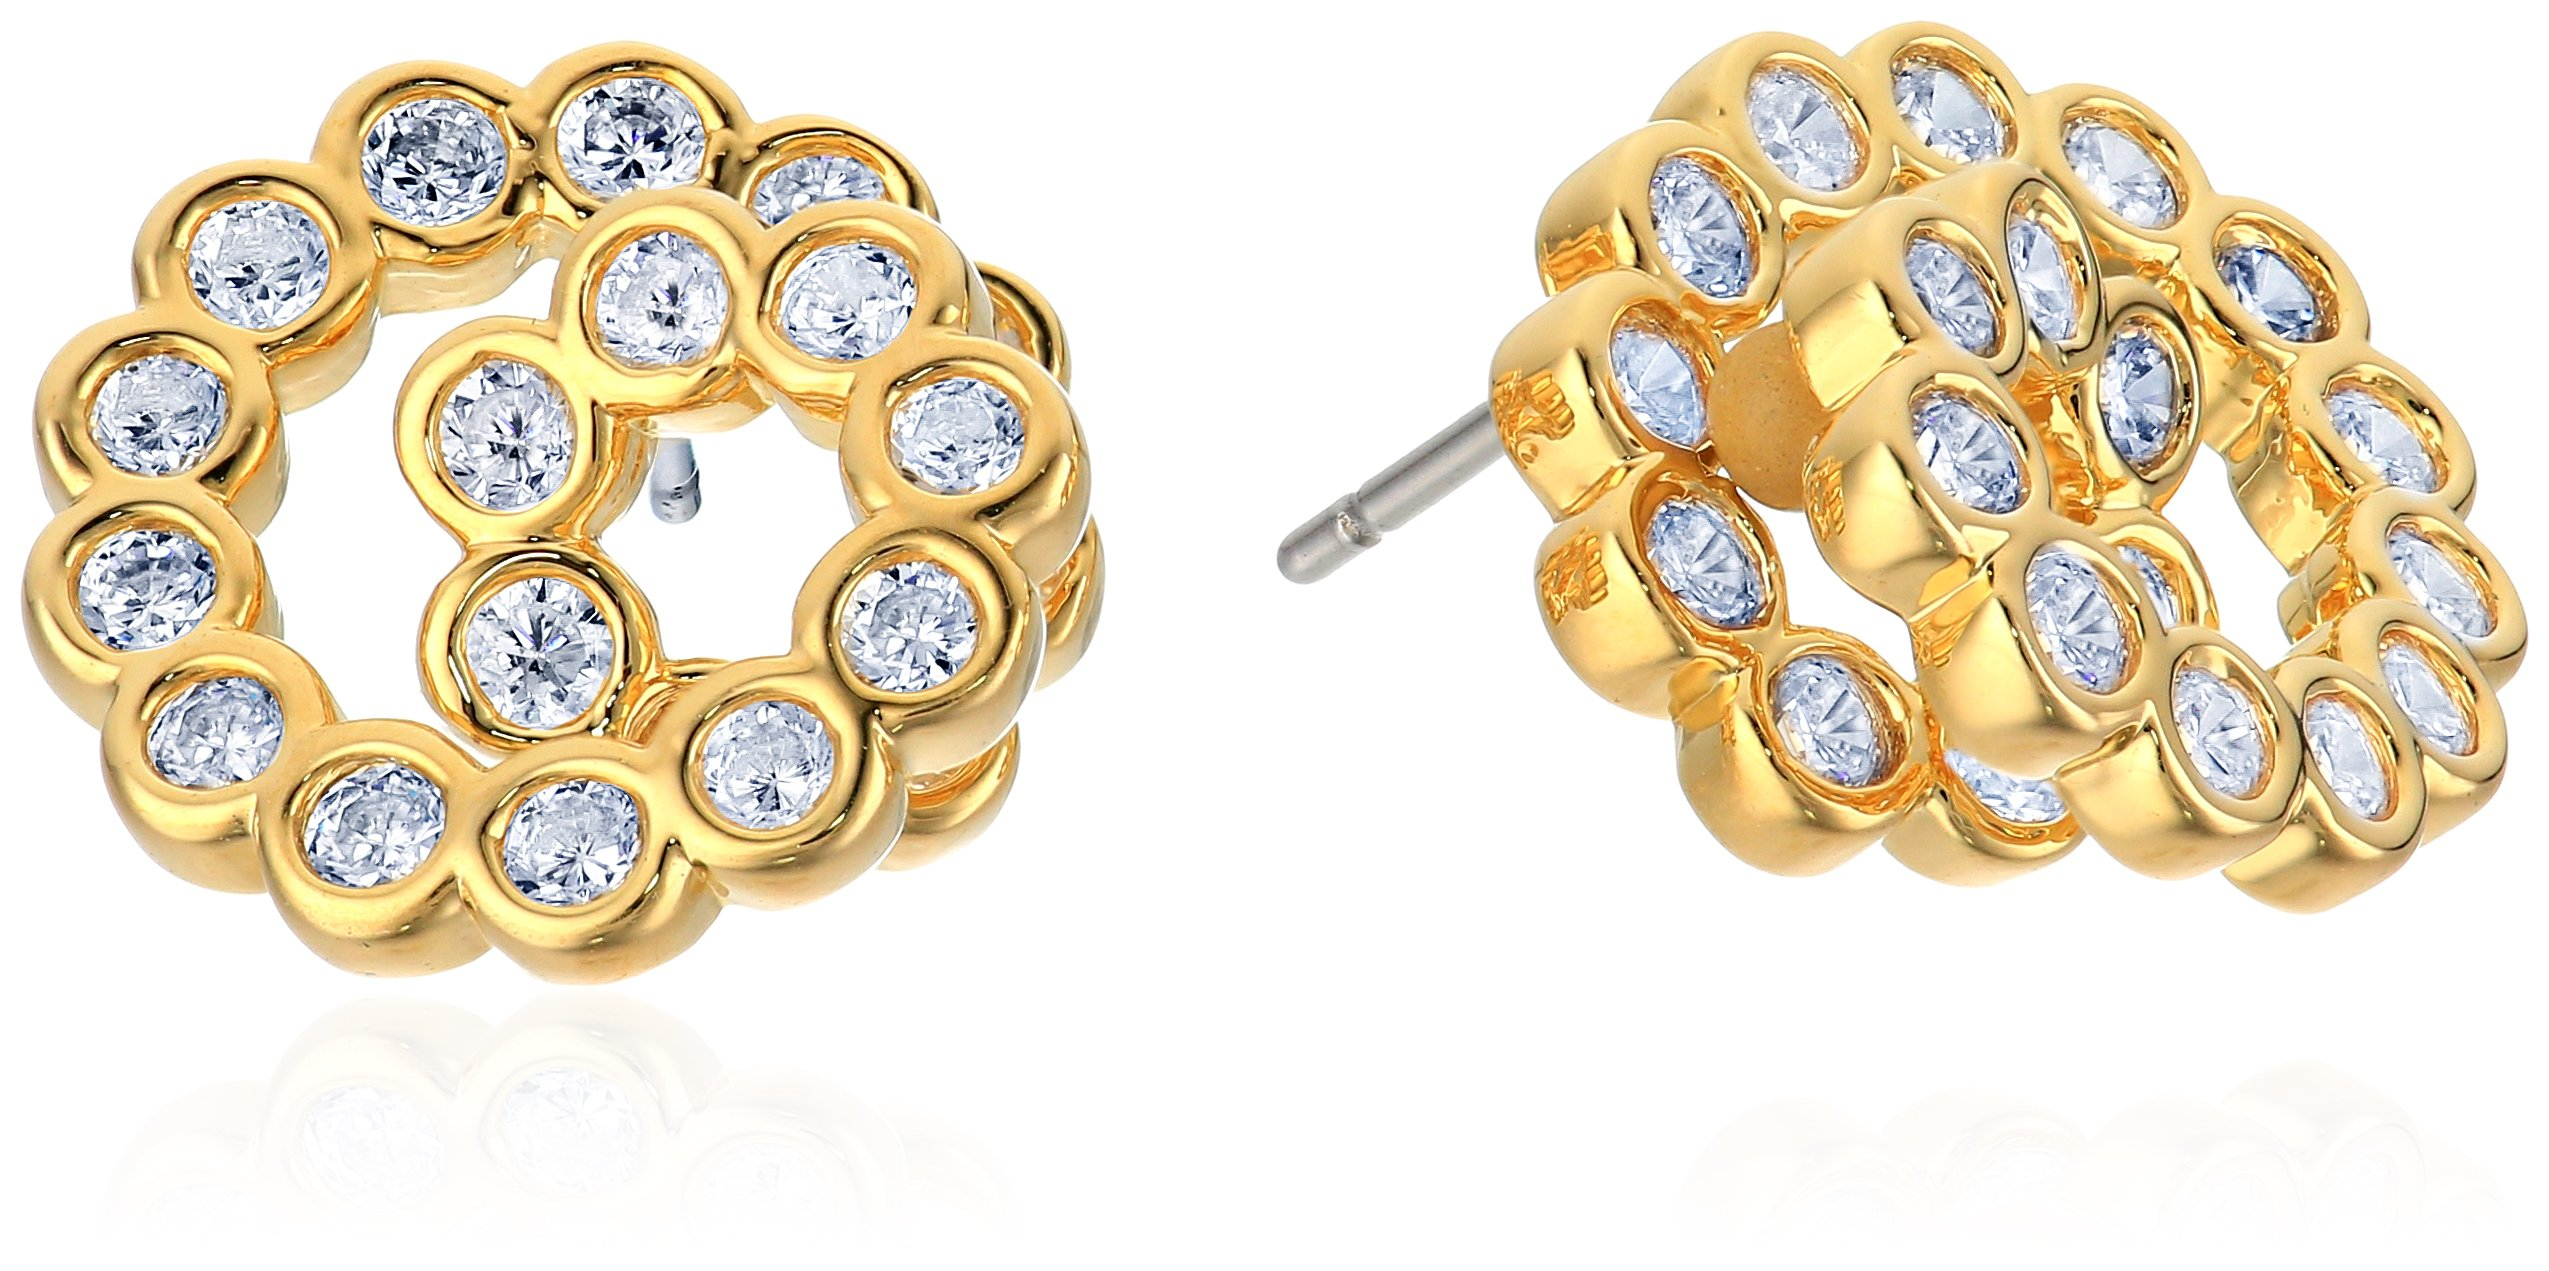 kate spade new york Glitz and Glam Spiral Gold Stud Earrings